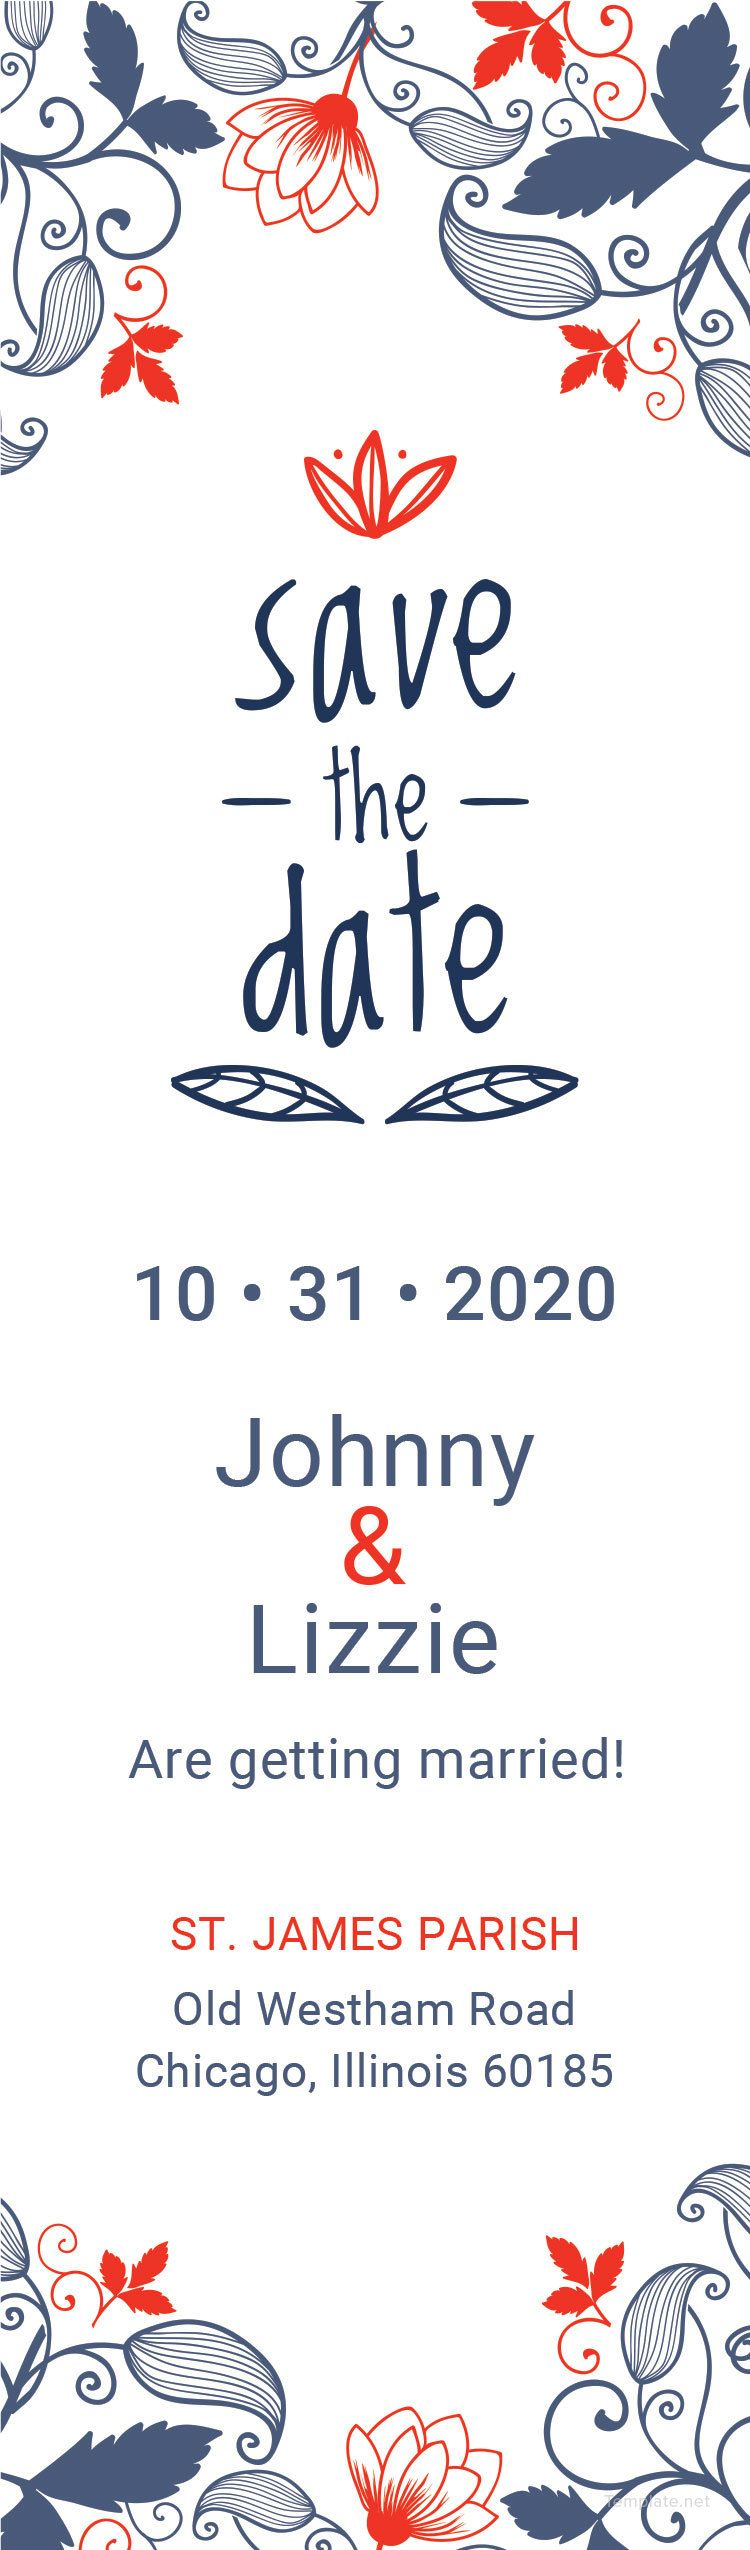 Save The Date Bookmark Template Free Jpg Illustrator Word Apple Pages Psd Publisher Template Net Bookmark Template Templates Words Save the date bookmark template